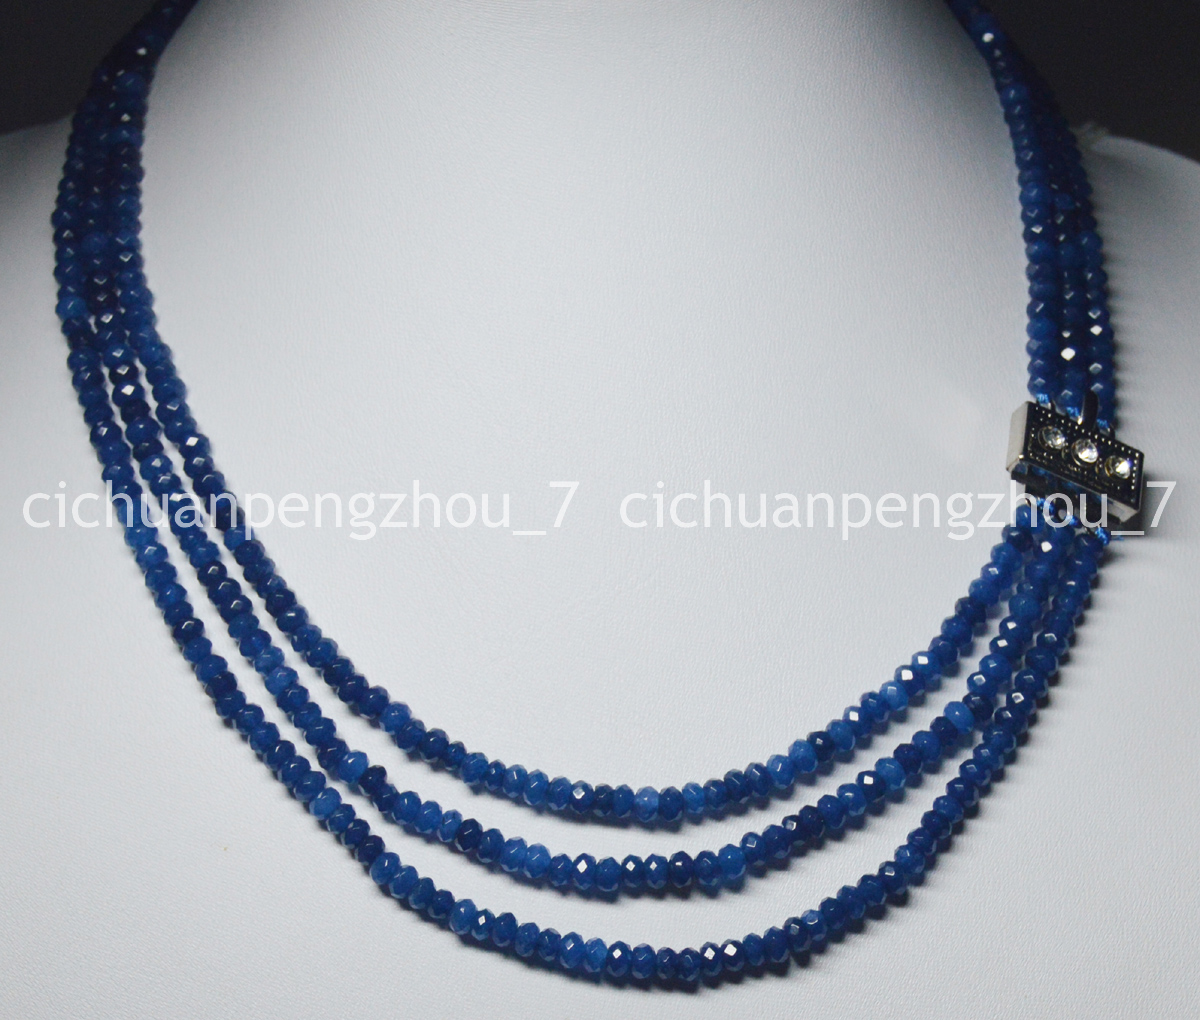 NATURAL 3 Rows 2X4mm FACETED AQUAMARINE BEADS NECKLACE 17-19/'/'